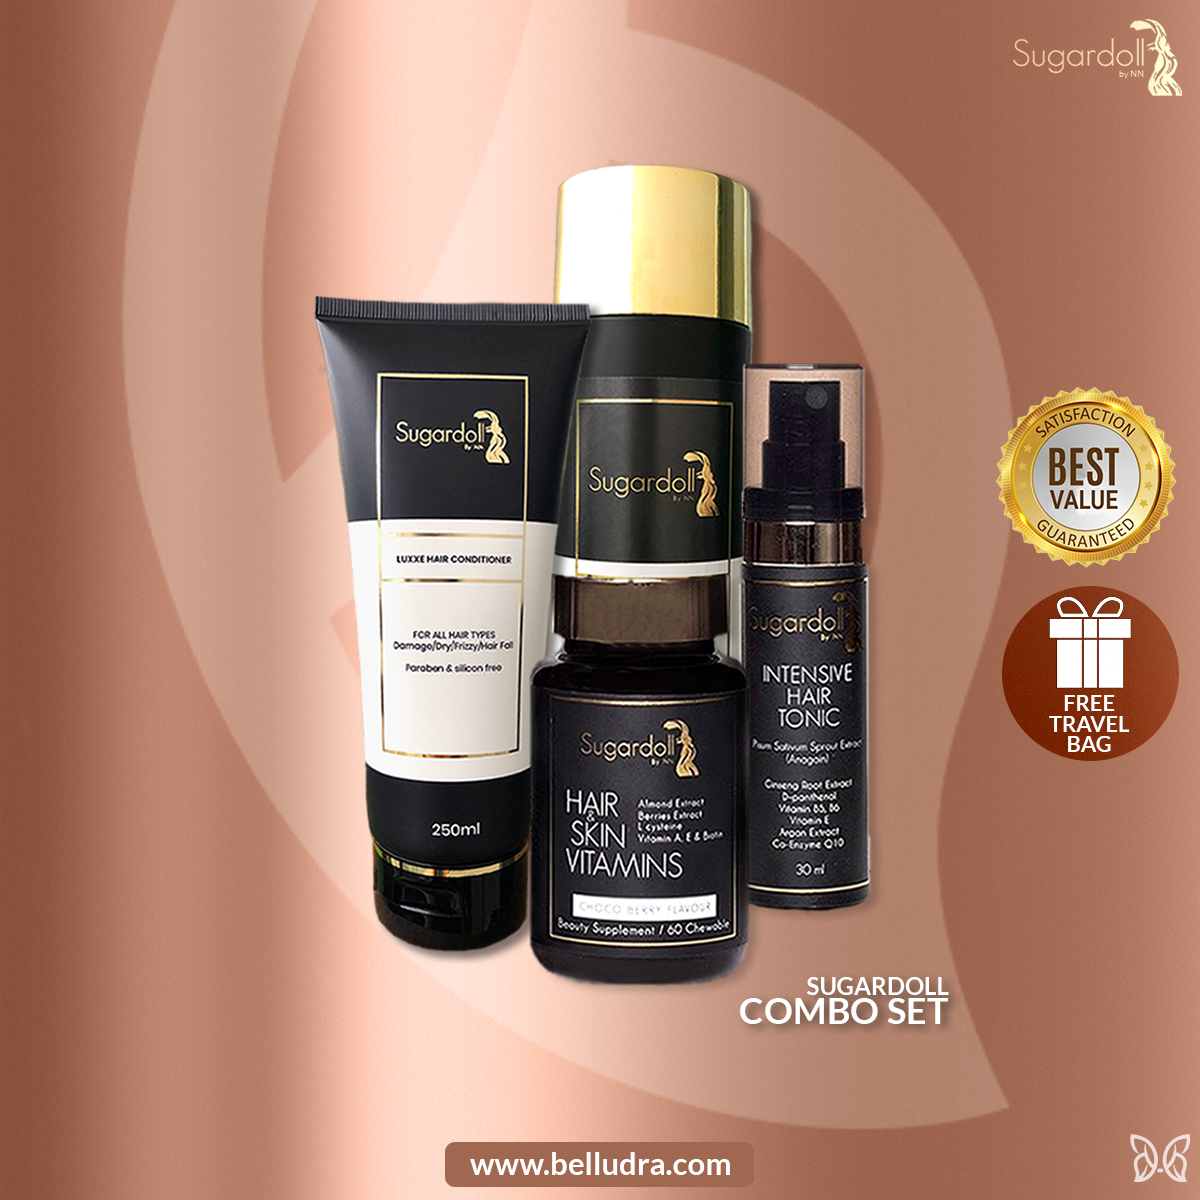 [Hair Loss Treatment] Sugardoll Hair & Skin Vitamins + Intensive Hair Tonic + Shampoo & Conditioner Set + Free Gift